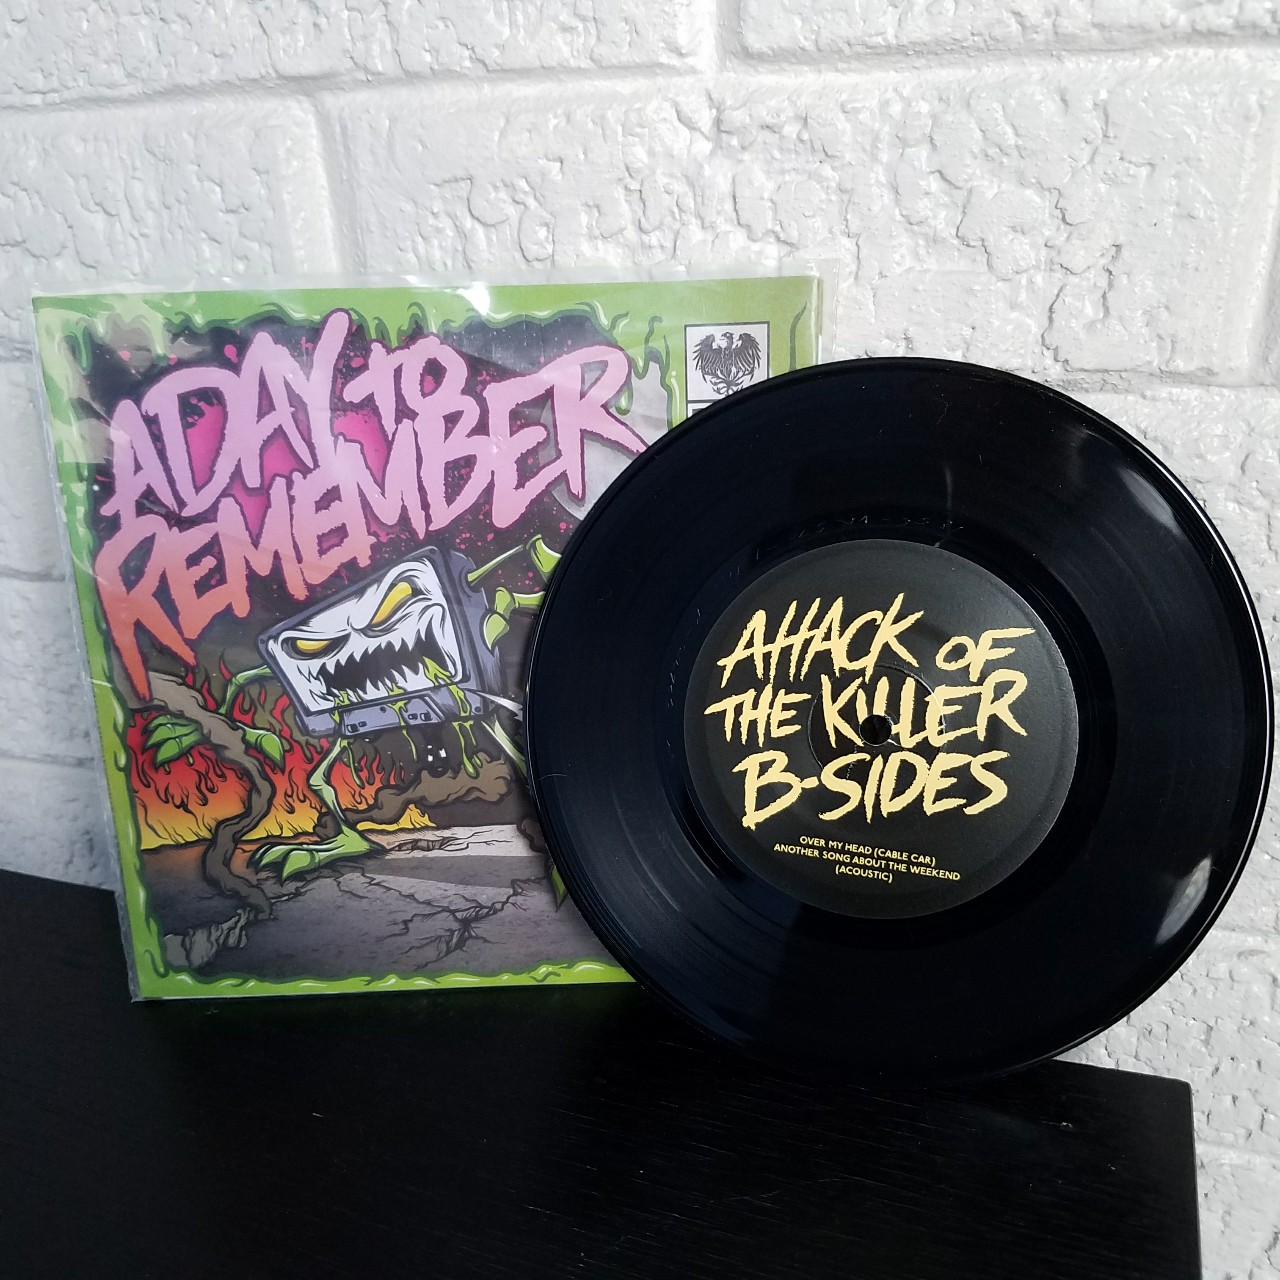 A Day To Remember 45 (7 inch) vinyl record! This    - Depop